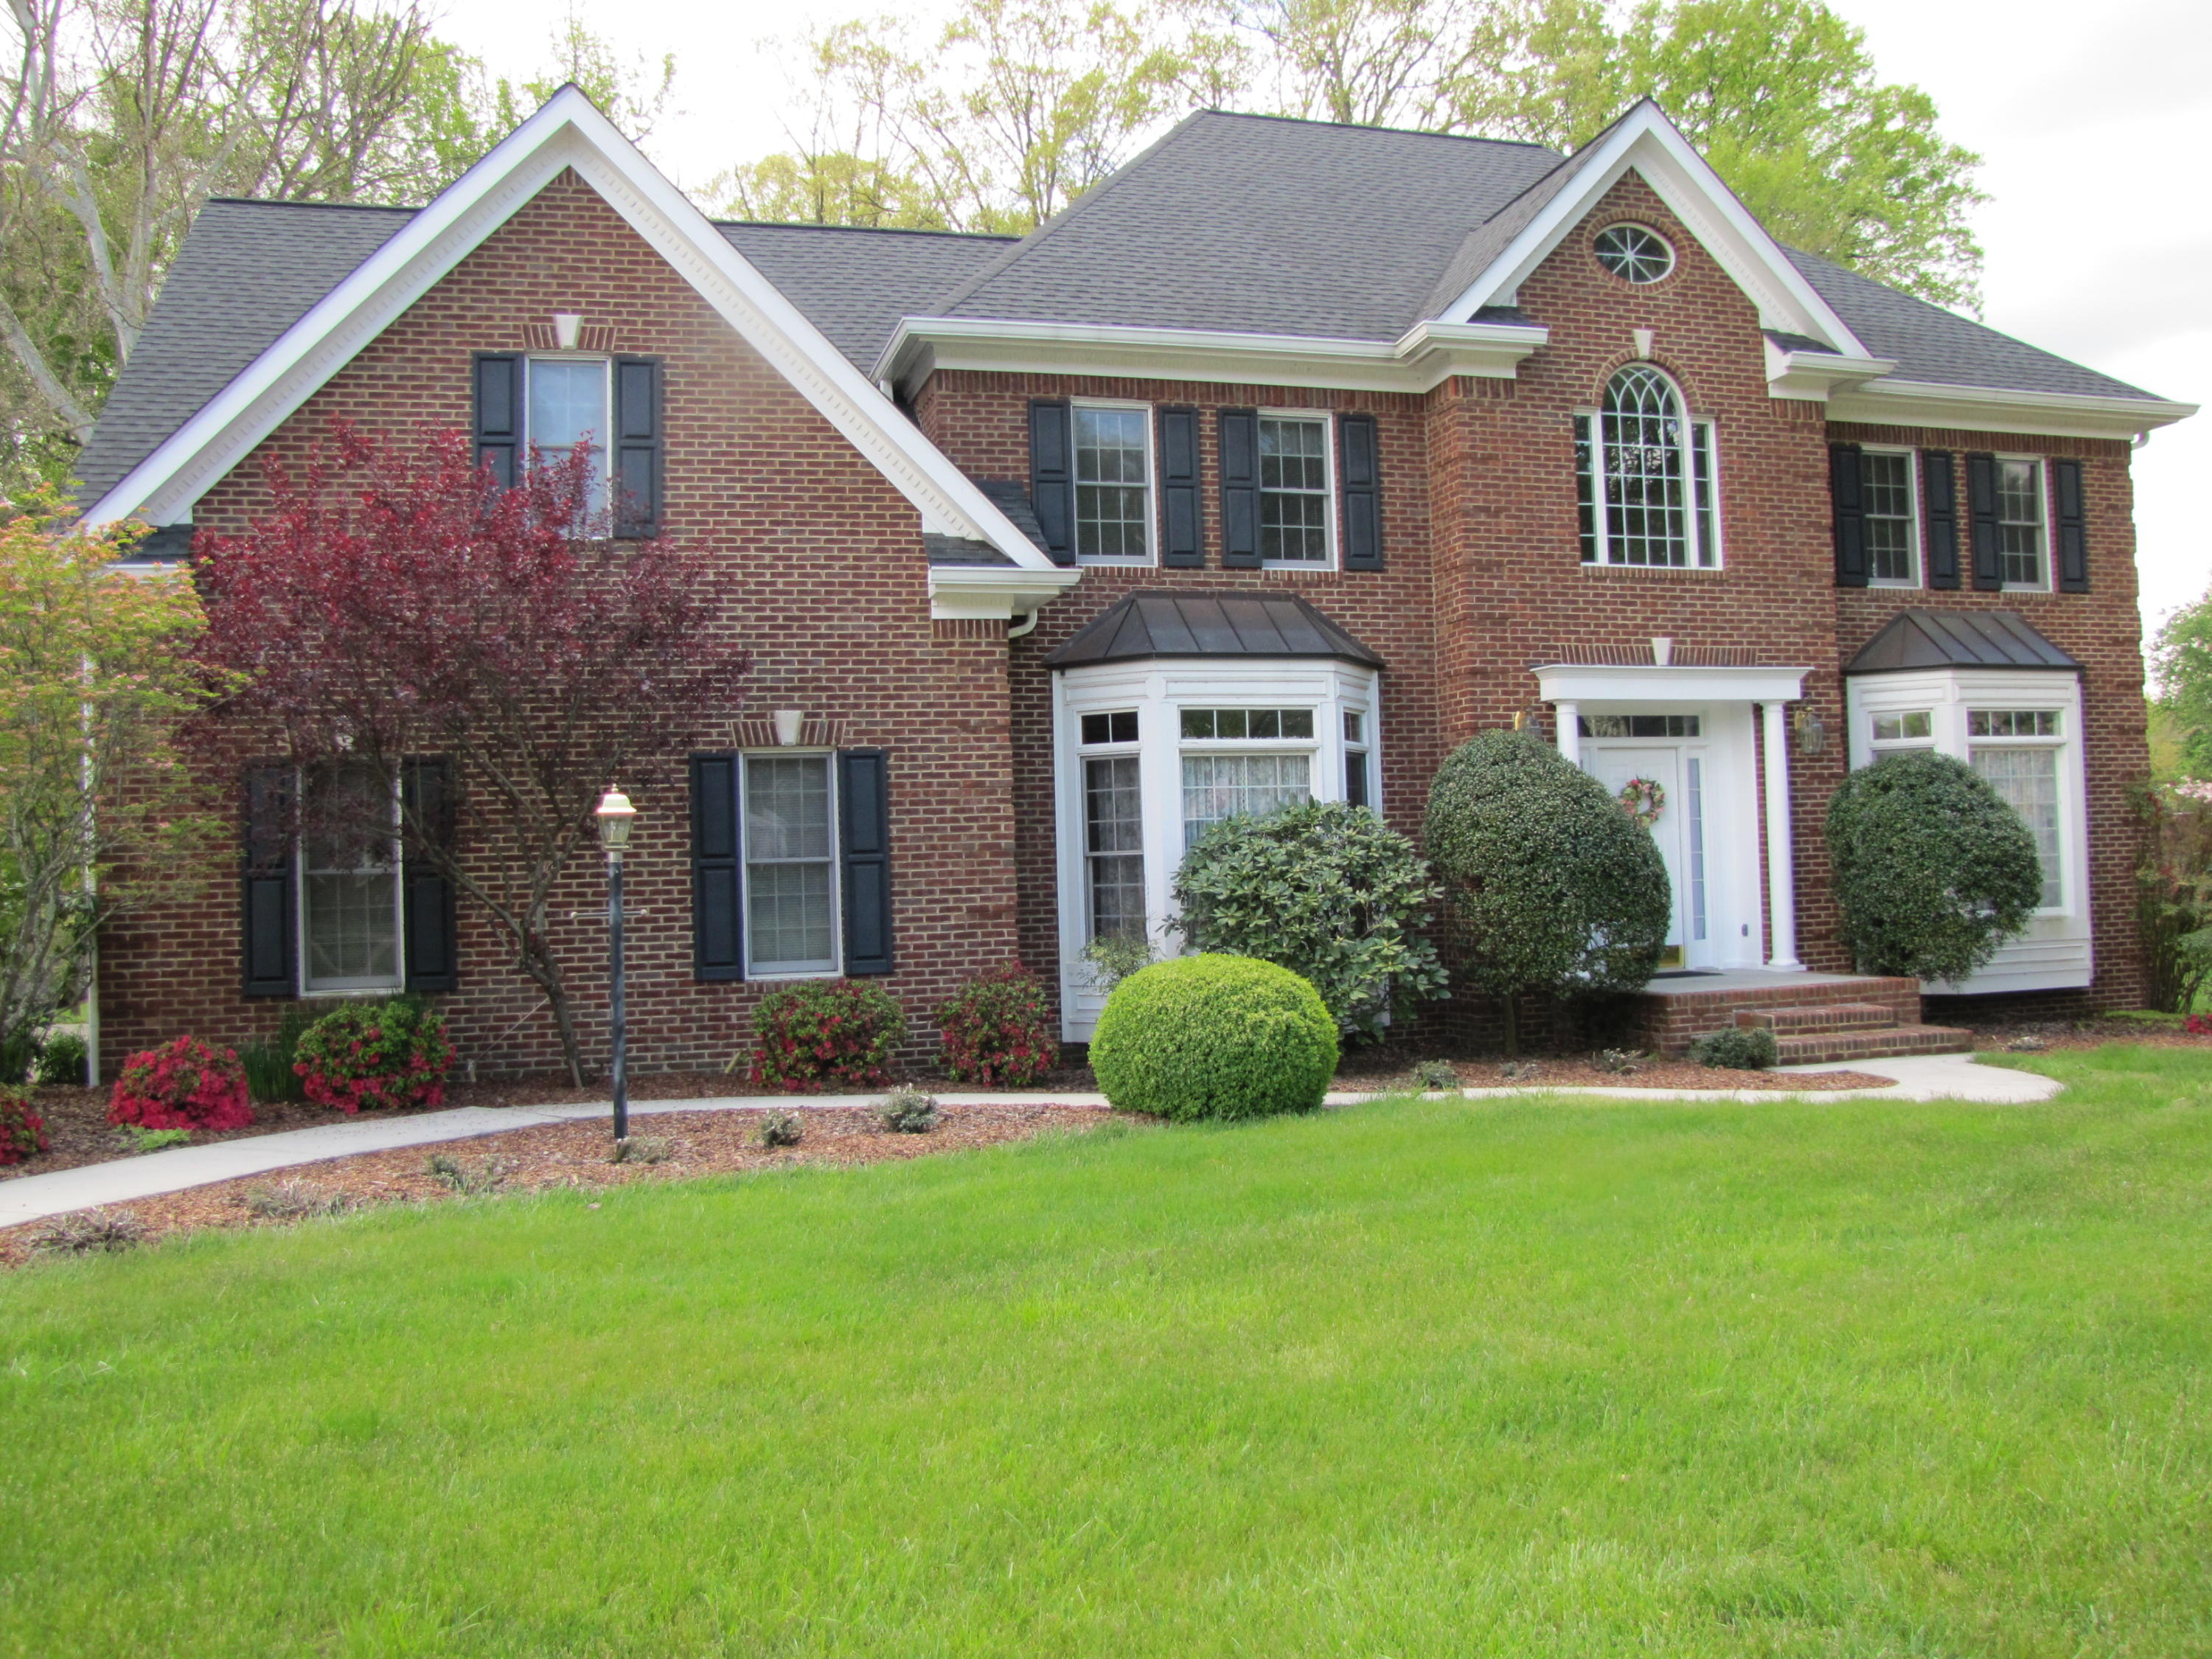 100 Chippendale Square, Kingsport, Tennessee 37660, 4 Bedrooms Bedrooms, ,5 BathroomsBathrooms,Single Family,For Sale,100 Chippendale Square,2,9921472